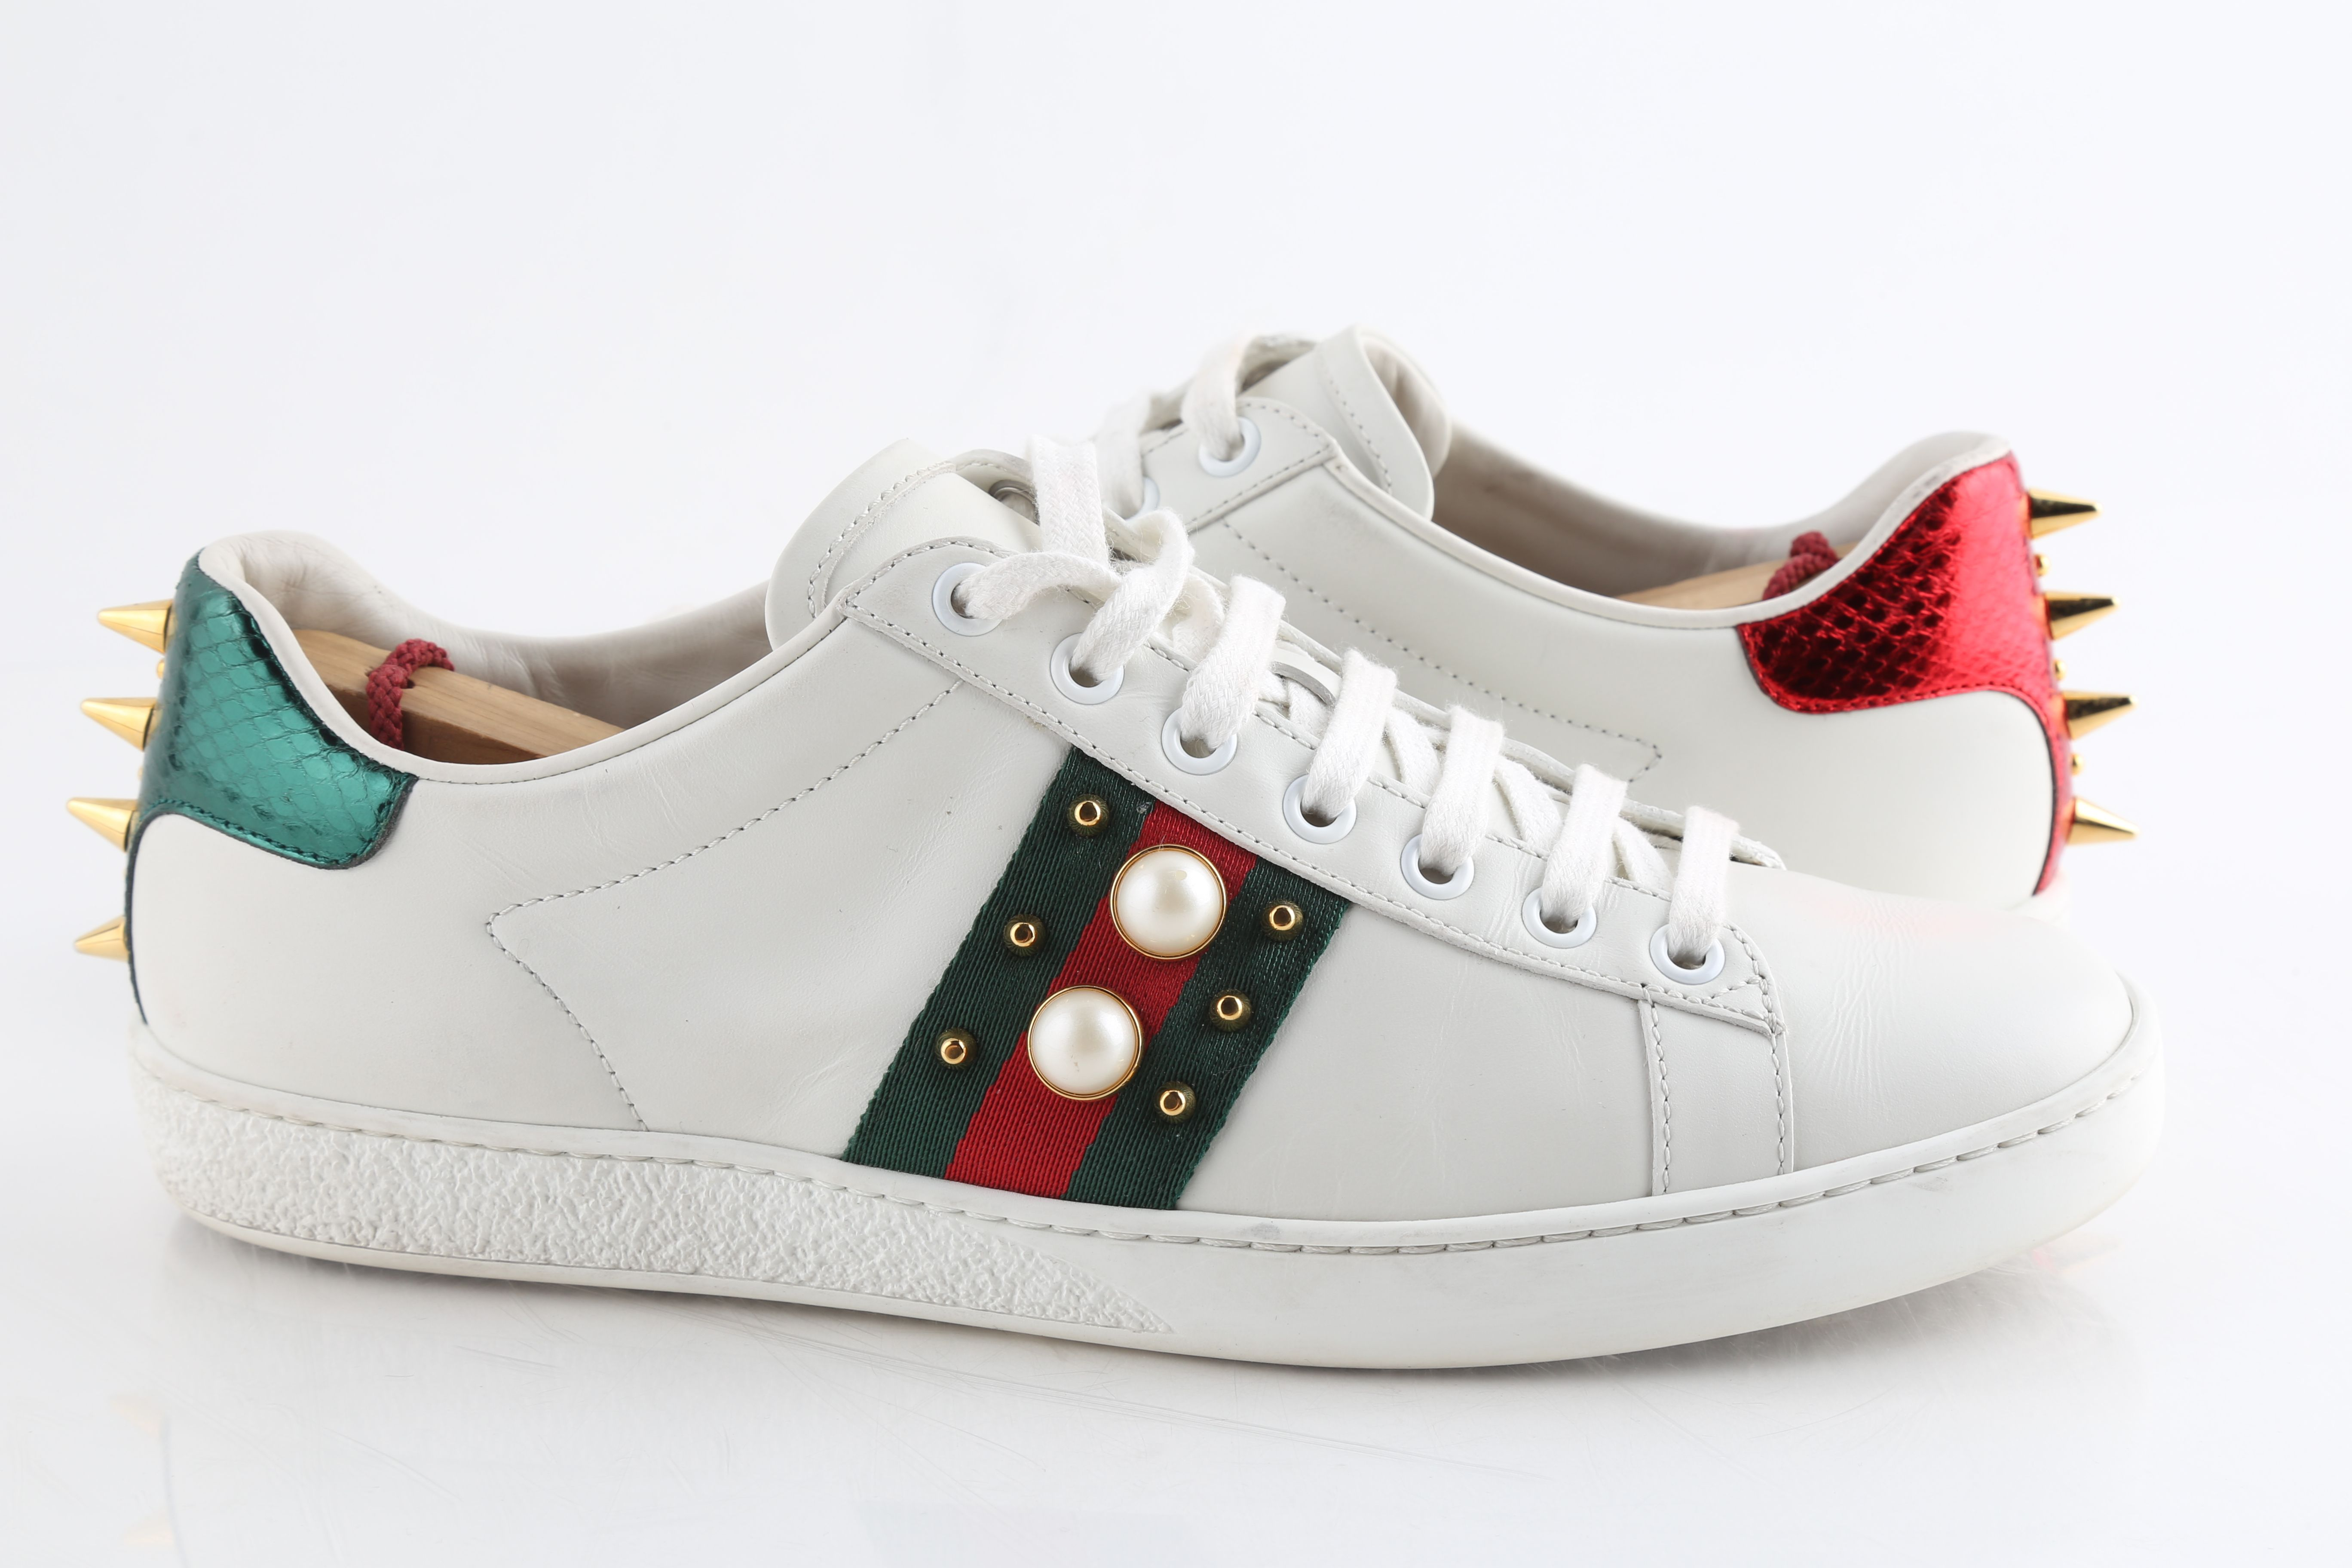 Gucci Ace Studded Leather Sneakers | LePrix